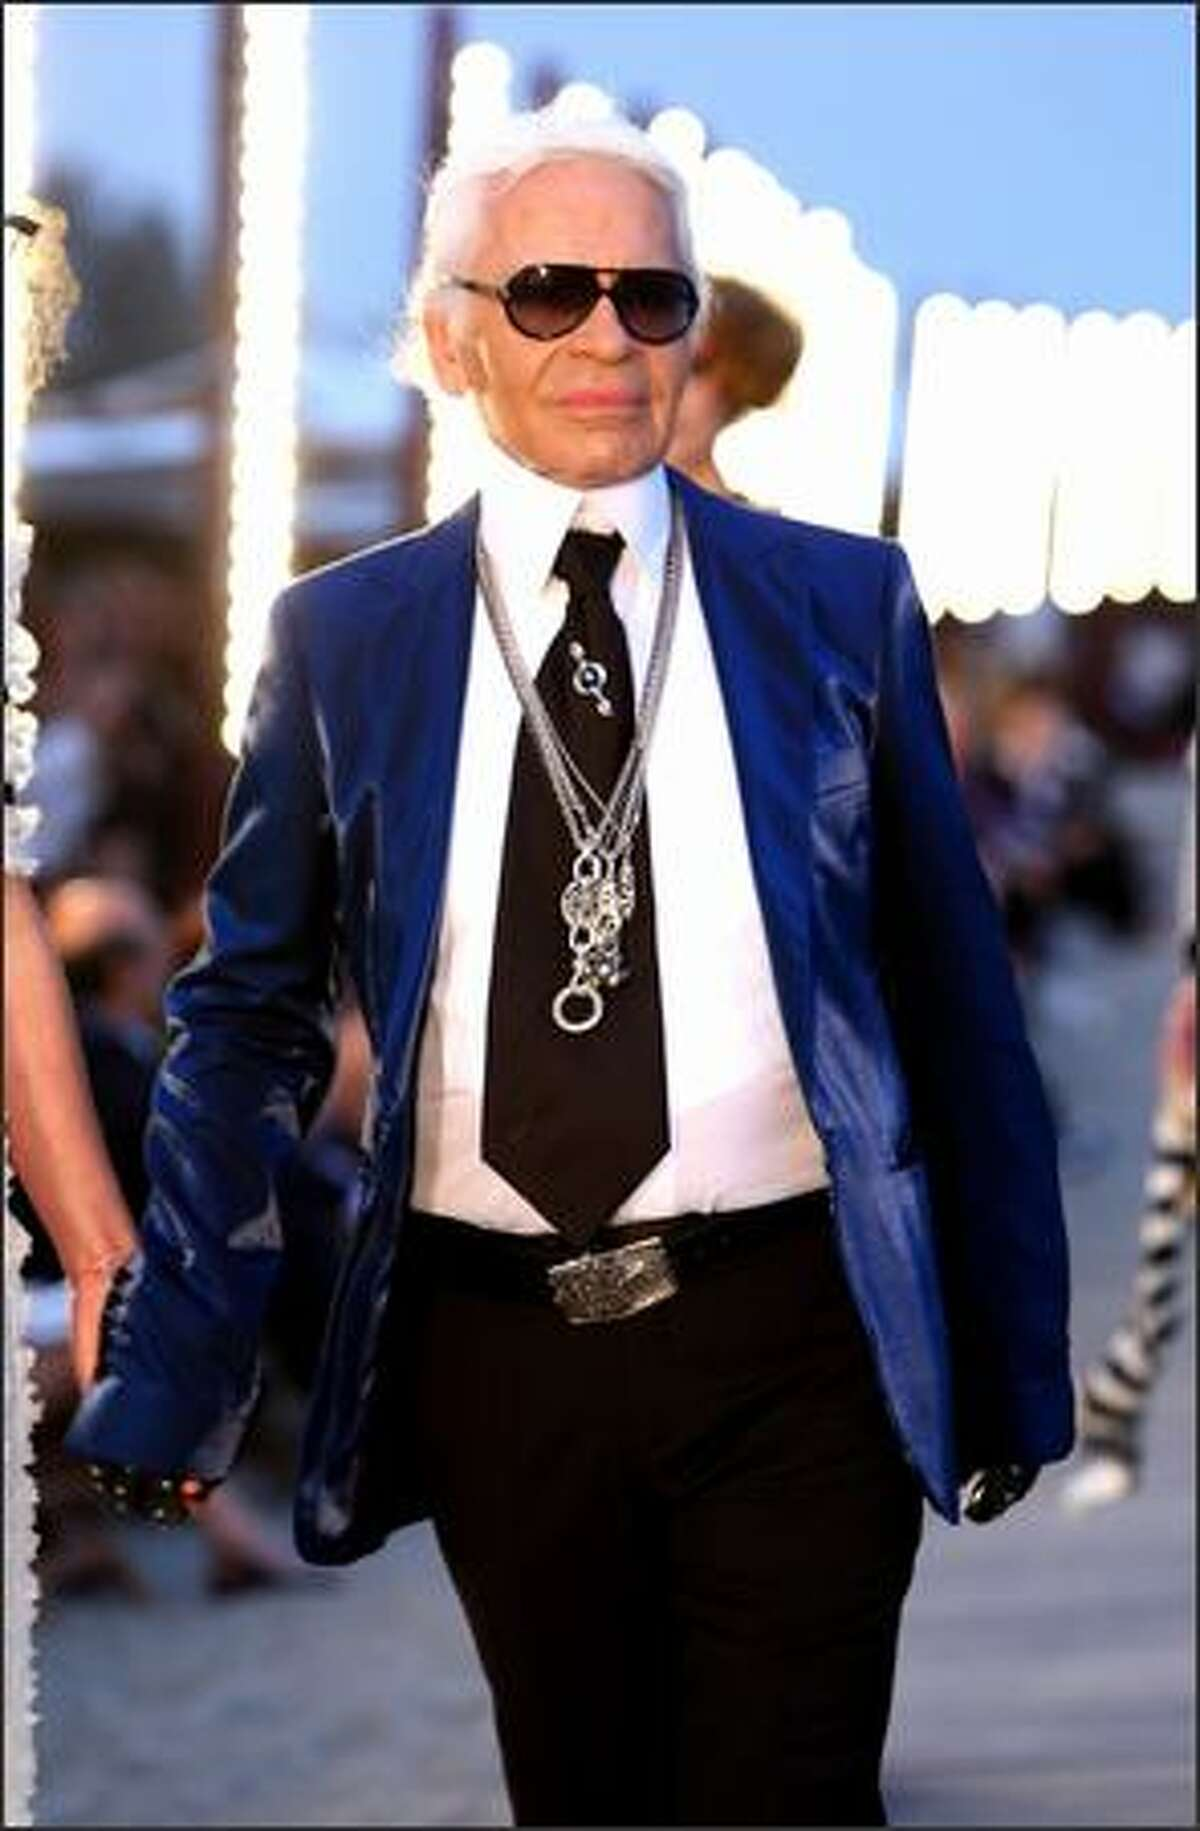 Designer Karl Lagerfeld walks the runway during the Chanel Cruise 2010 Fashion Show in Venice, Italy, on Thursday, May 14, 2009. Lagerfeld is the head designer at the venerable French couture house.